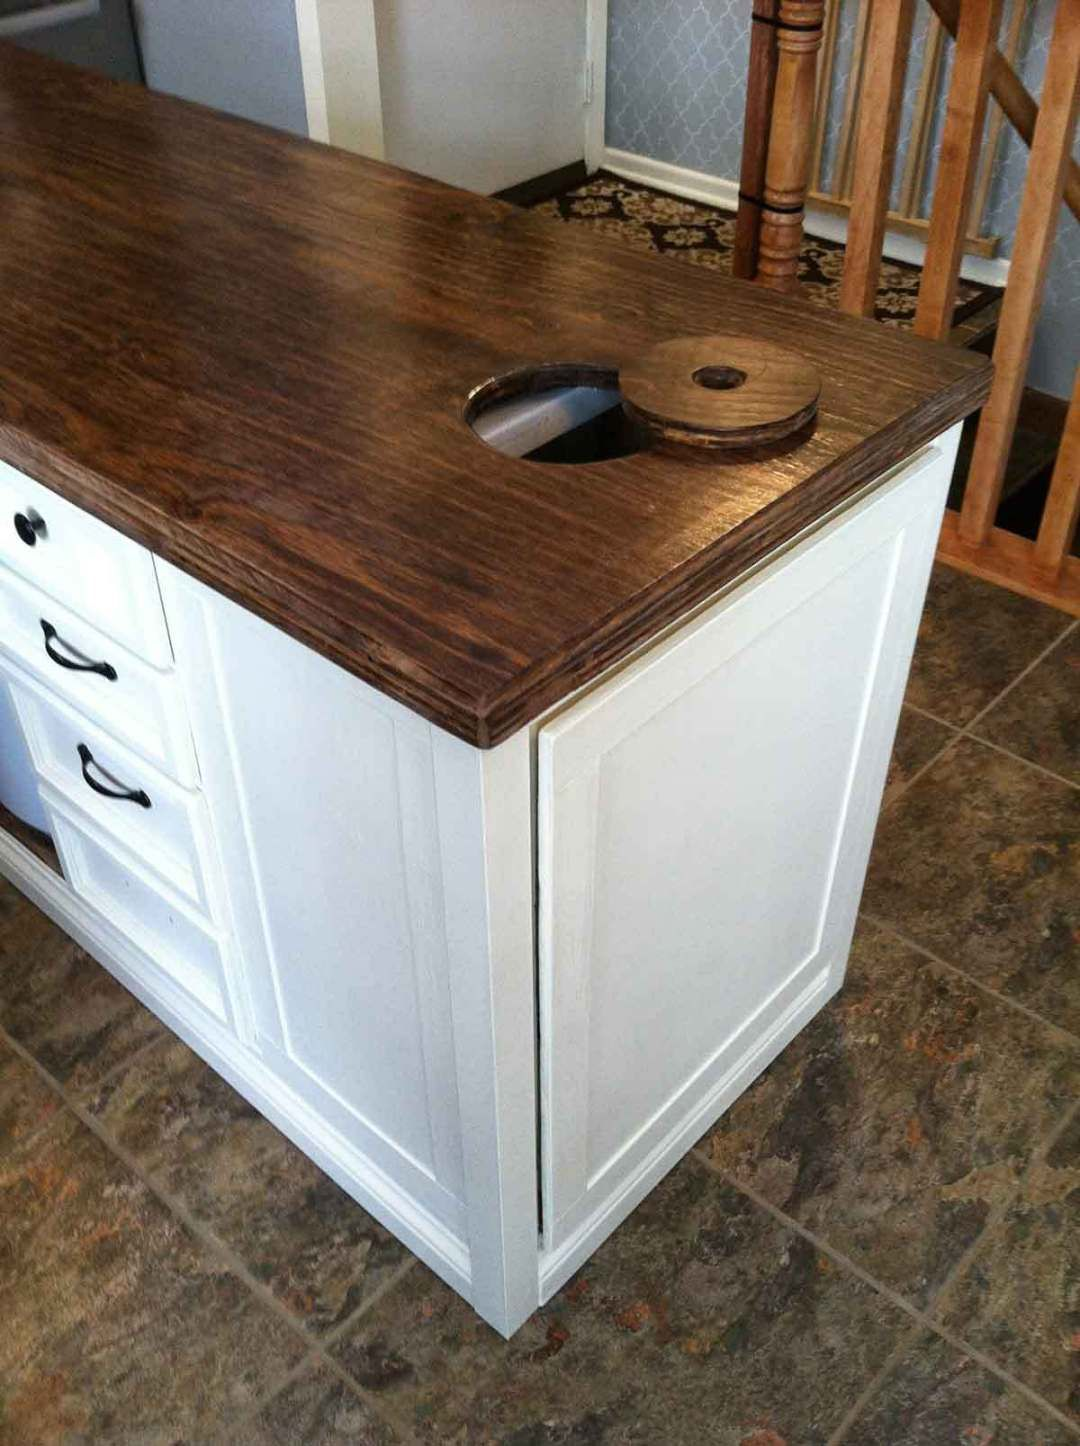 How To Make Your Own Counter For 20 Plywood Kitchen Kitchen Models Kitchen Colors